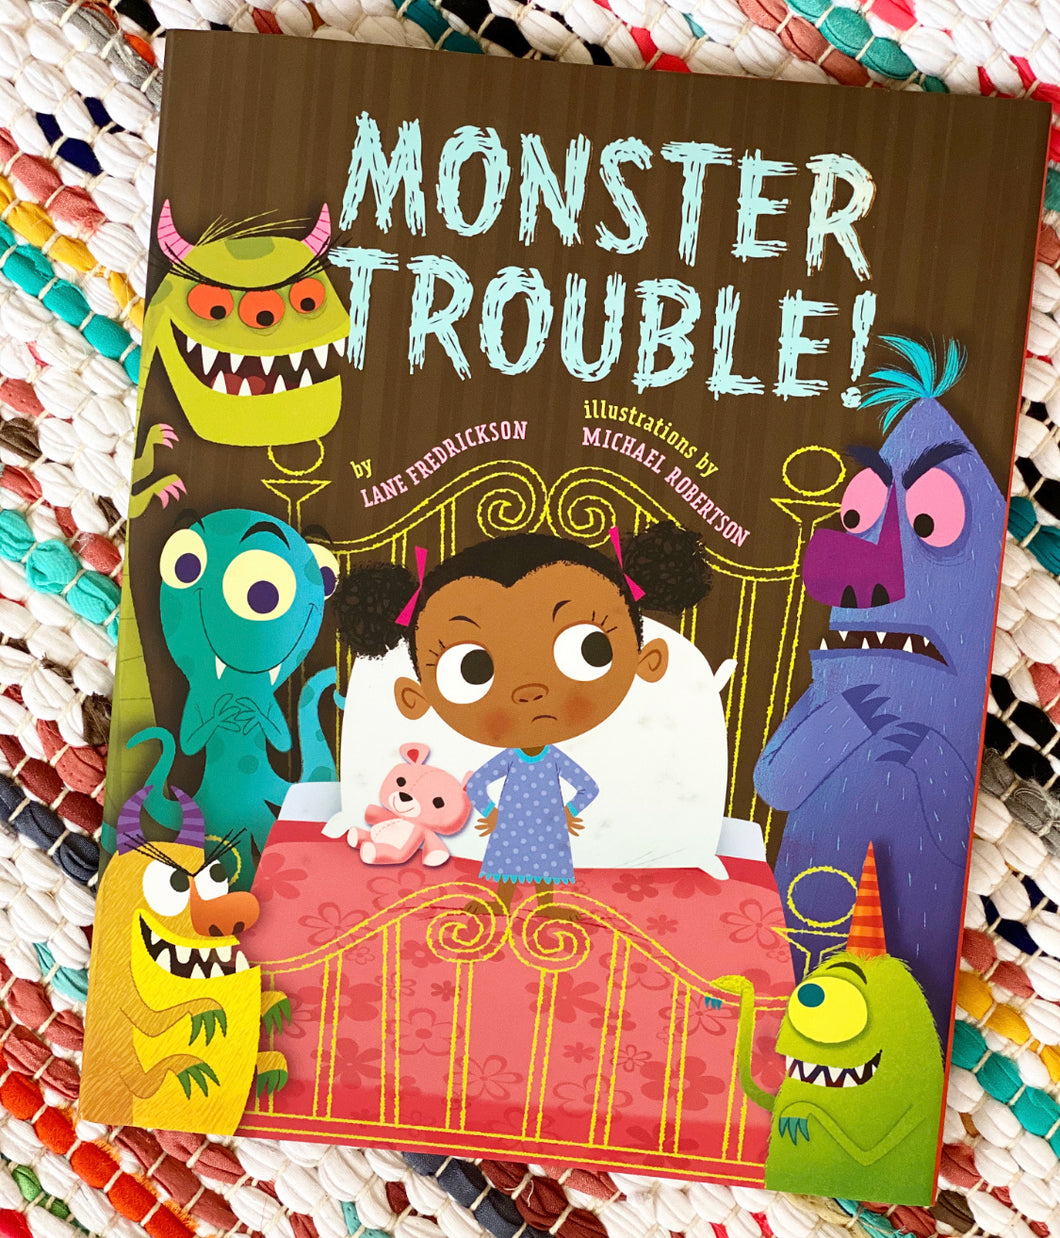 Monster Trouble! | Lane Fredrickson